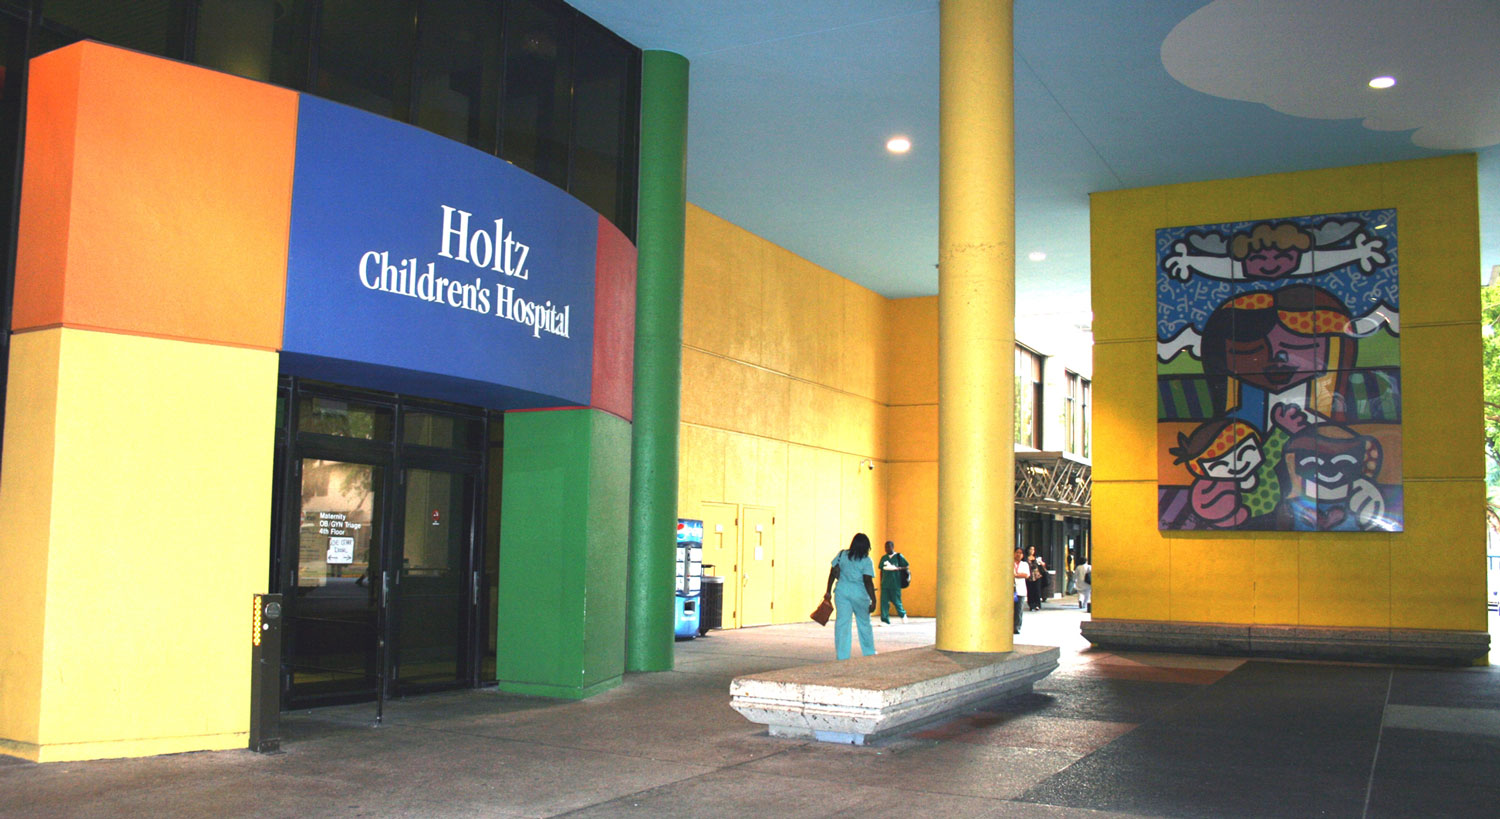 holtz childrens hospital connect - HD 1500×819